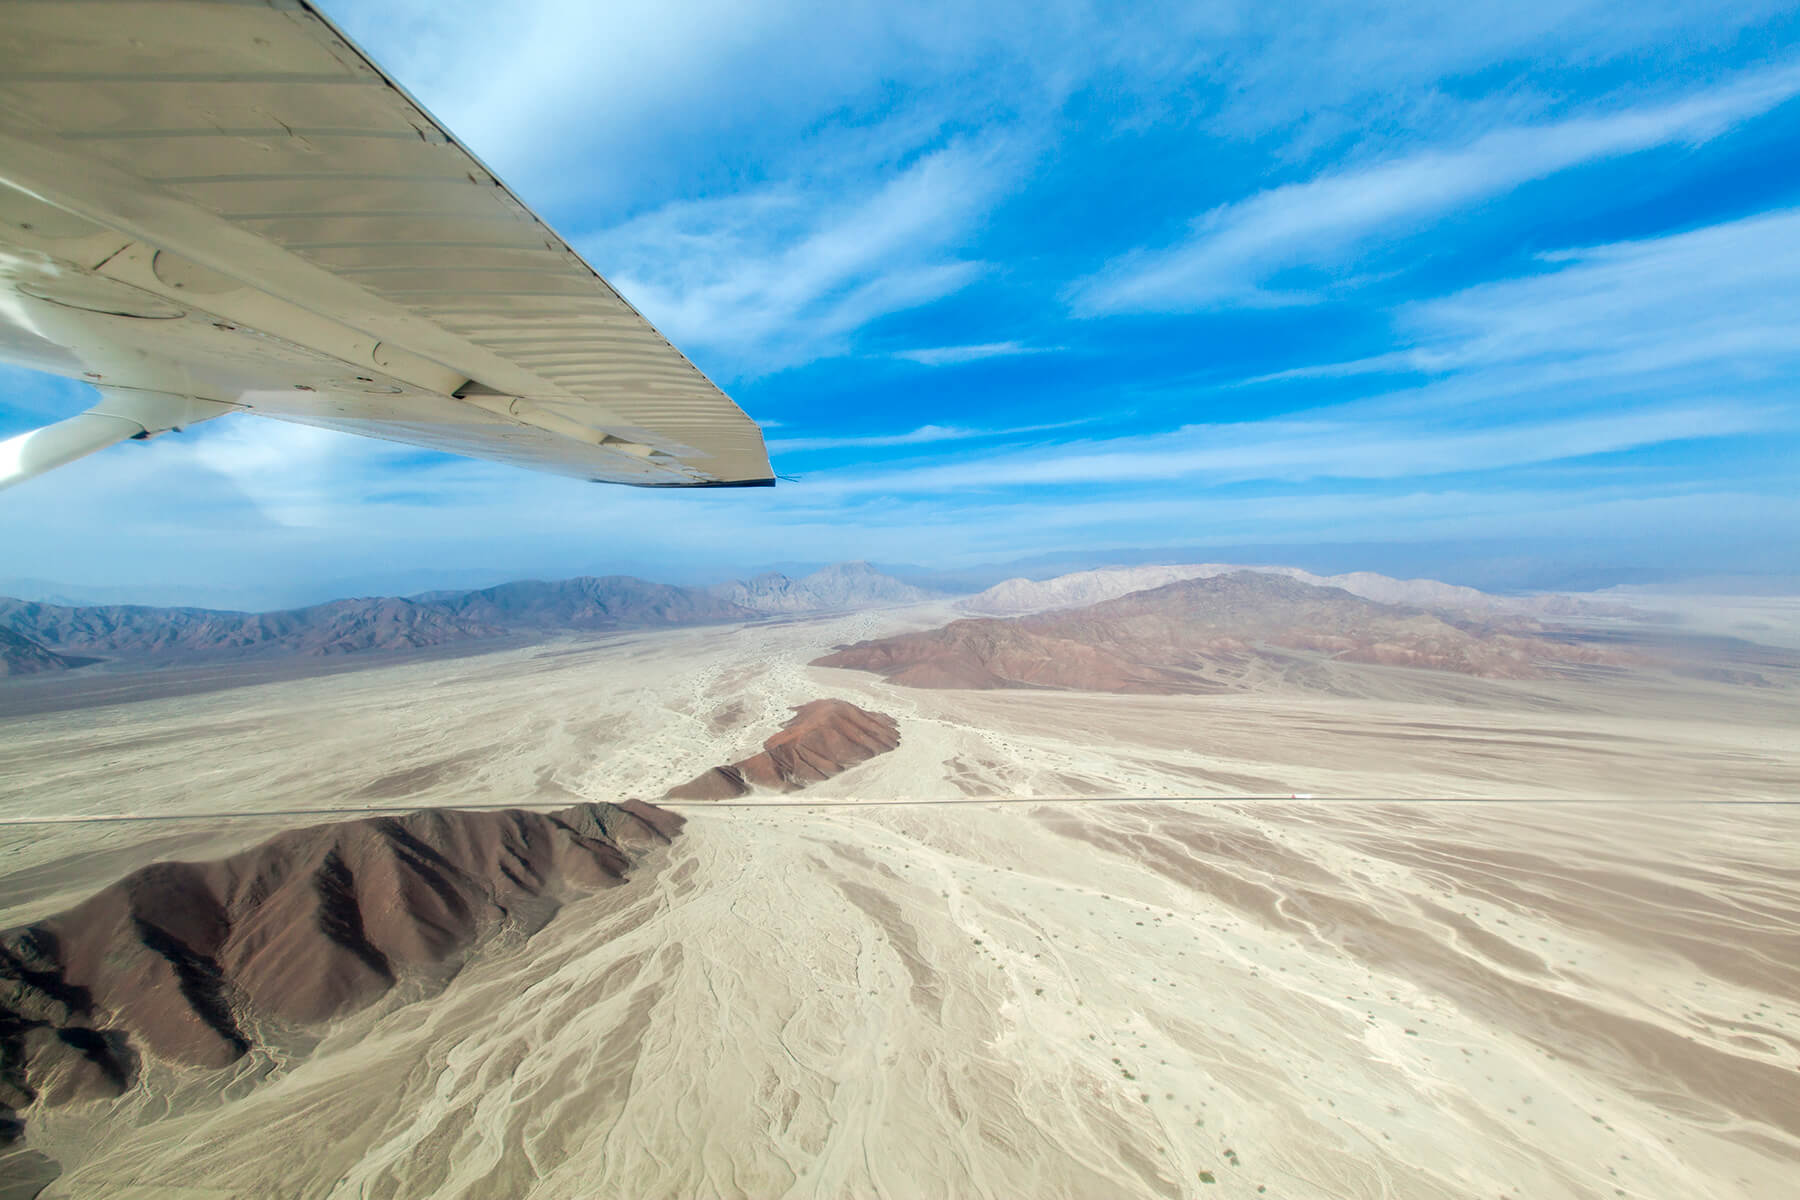 A flight over the Nazca lines with amazing views of the landscape